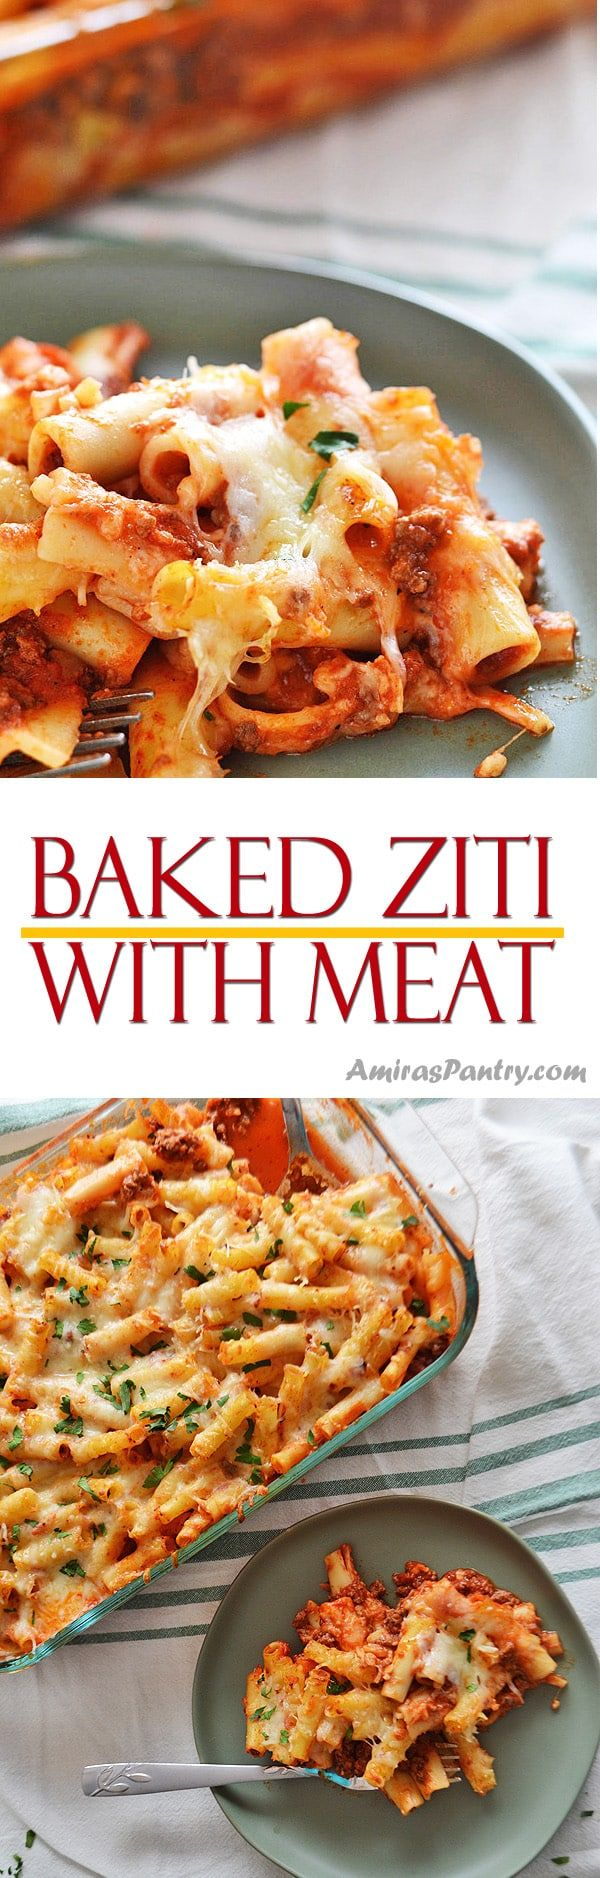 Easy Baked Ziti With Ground Beef Simple and easy baked ziti with ground beef recipe for a kid friendly weeknight dinner.  